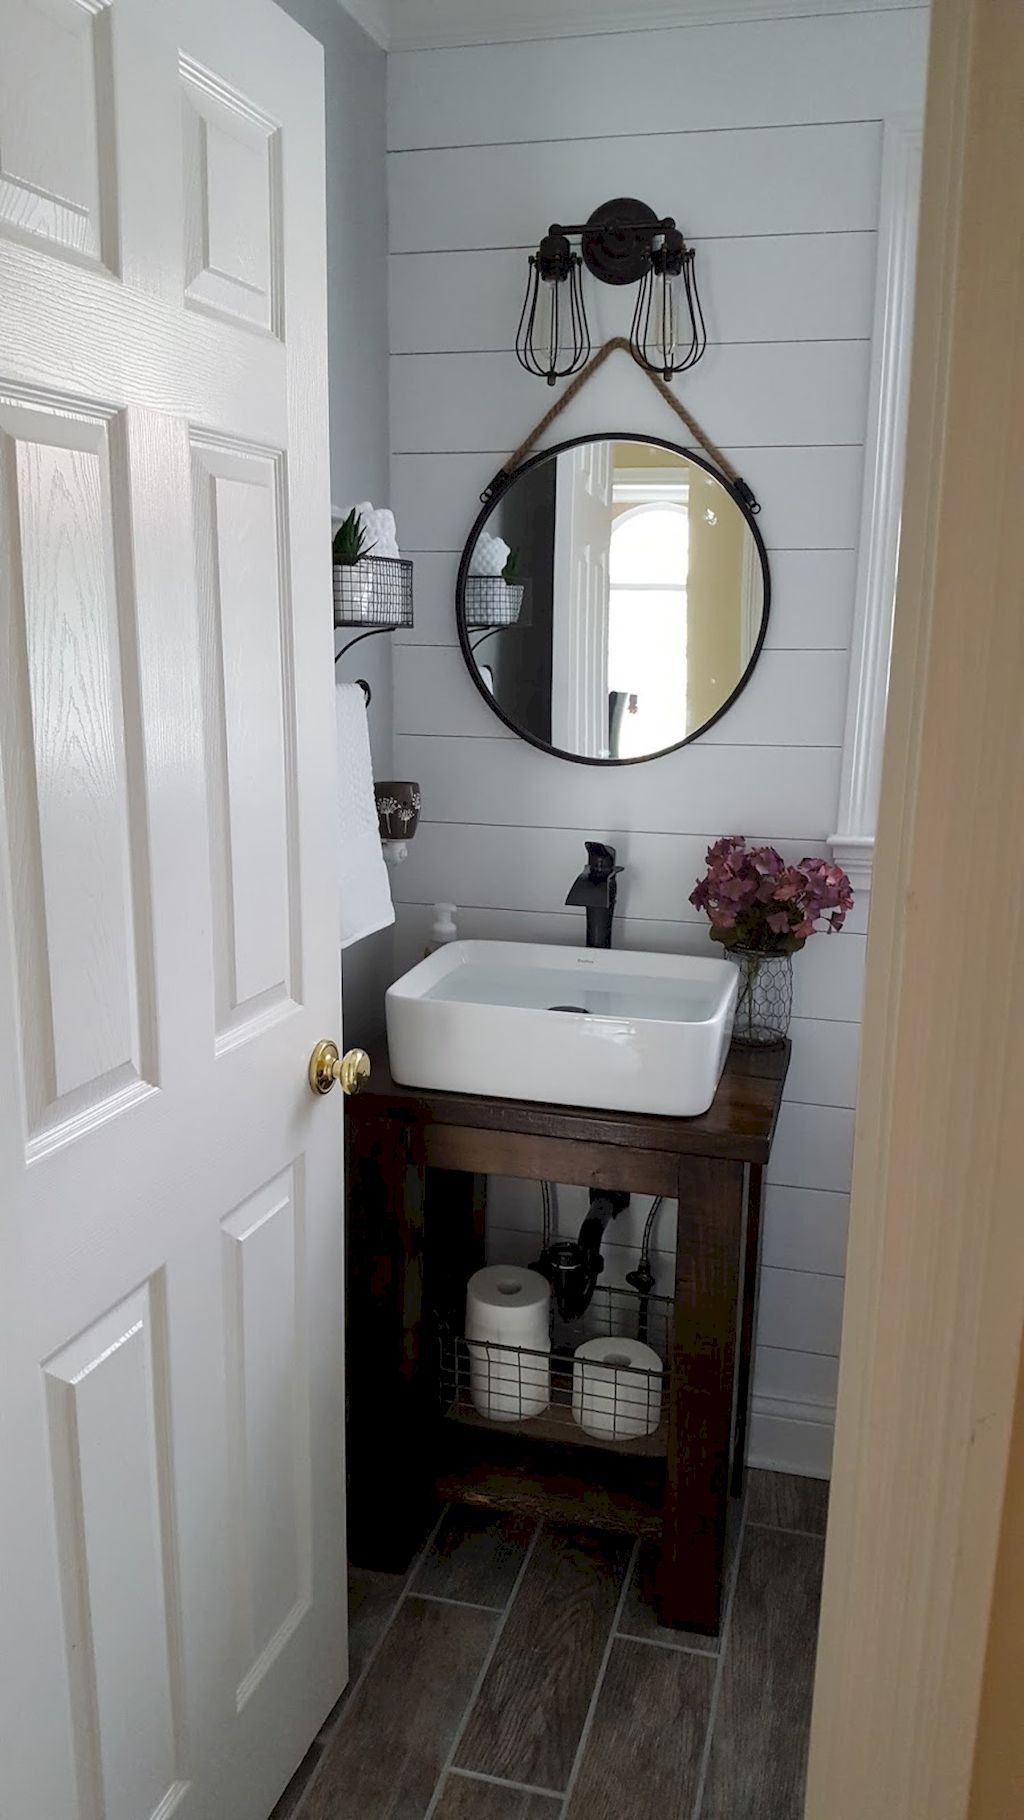 With creative small bathroom remodel ideas even the tiniest washroom can be as comfortable as & With creative small bathroom remodel ideas even the tiniest ...